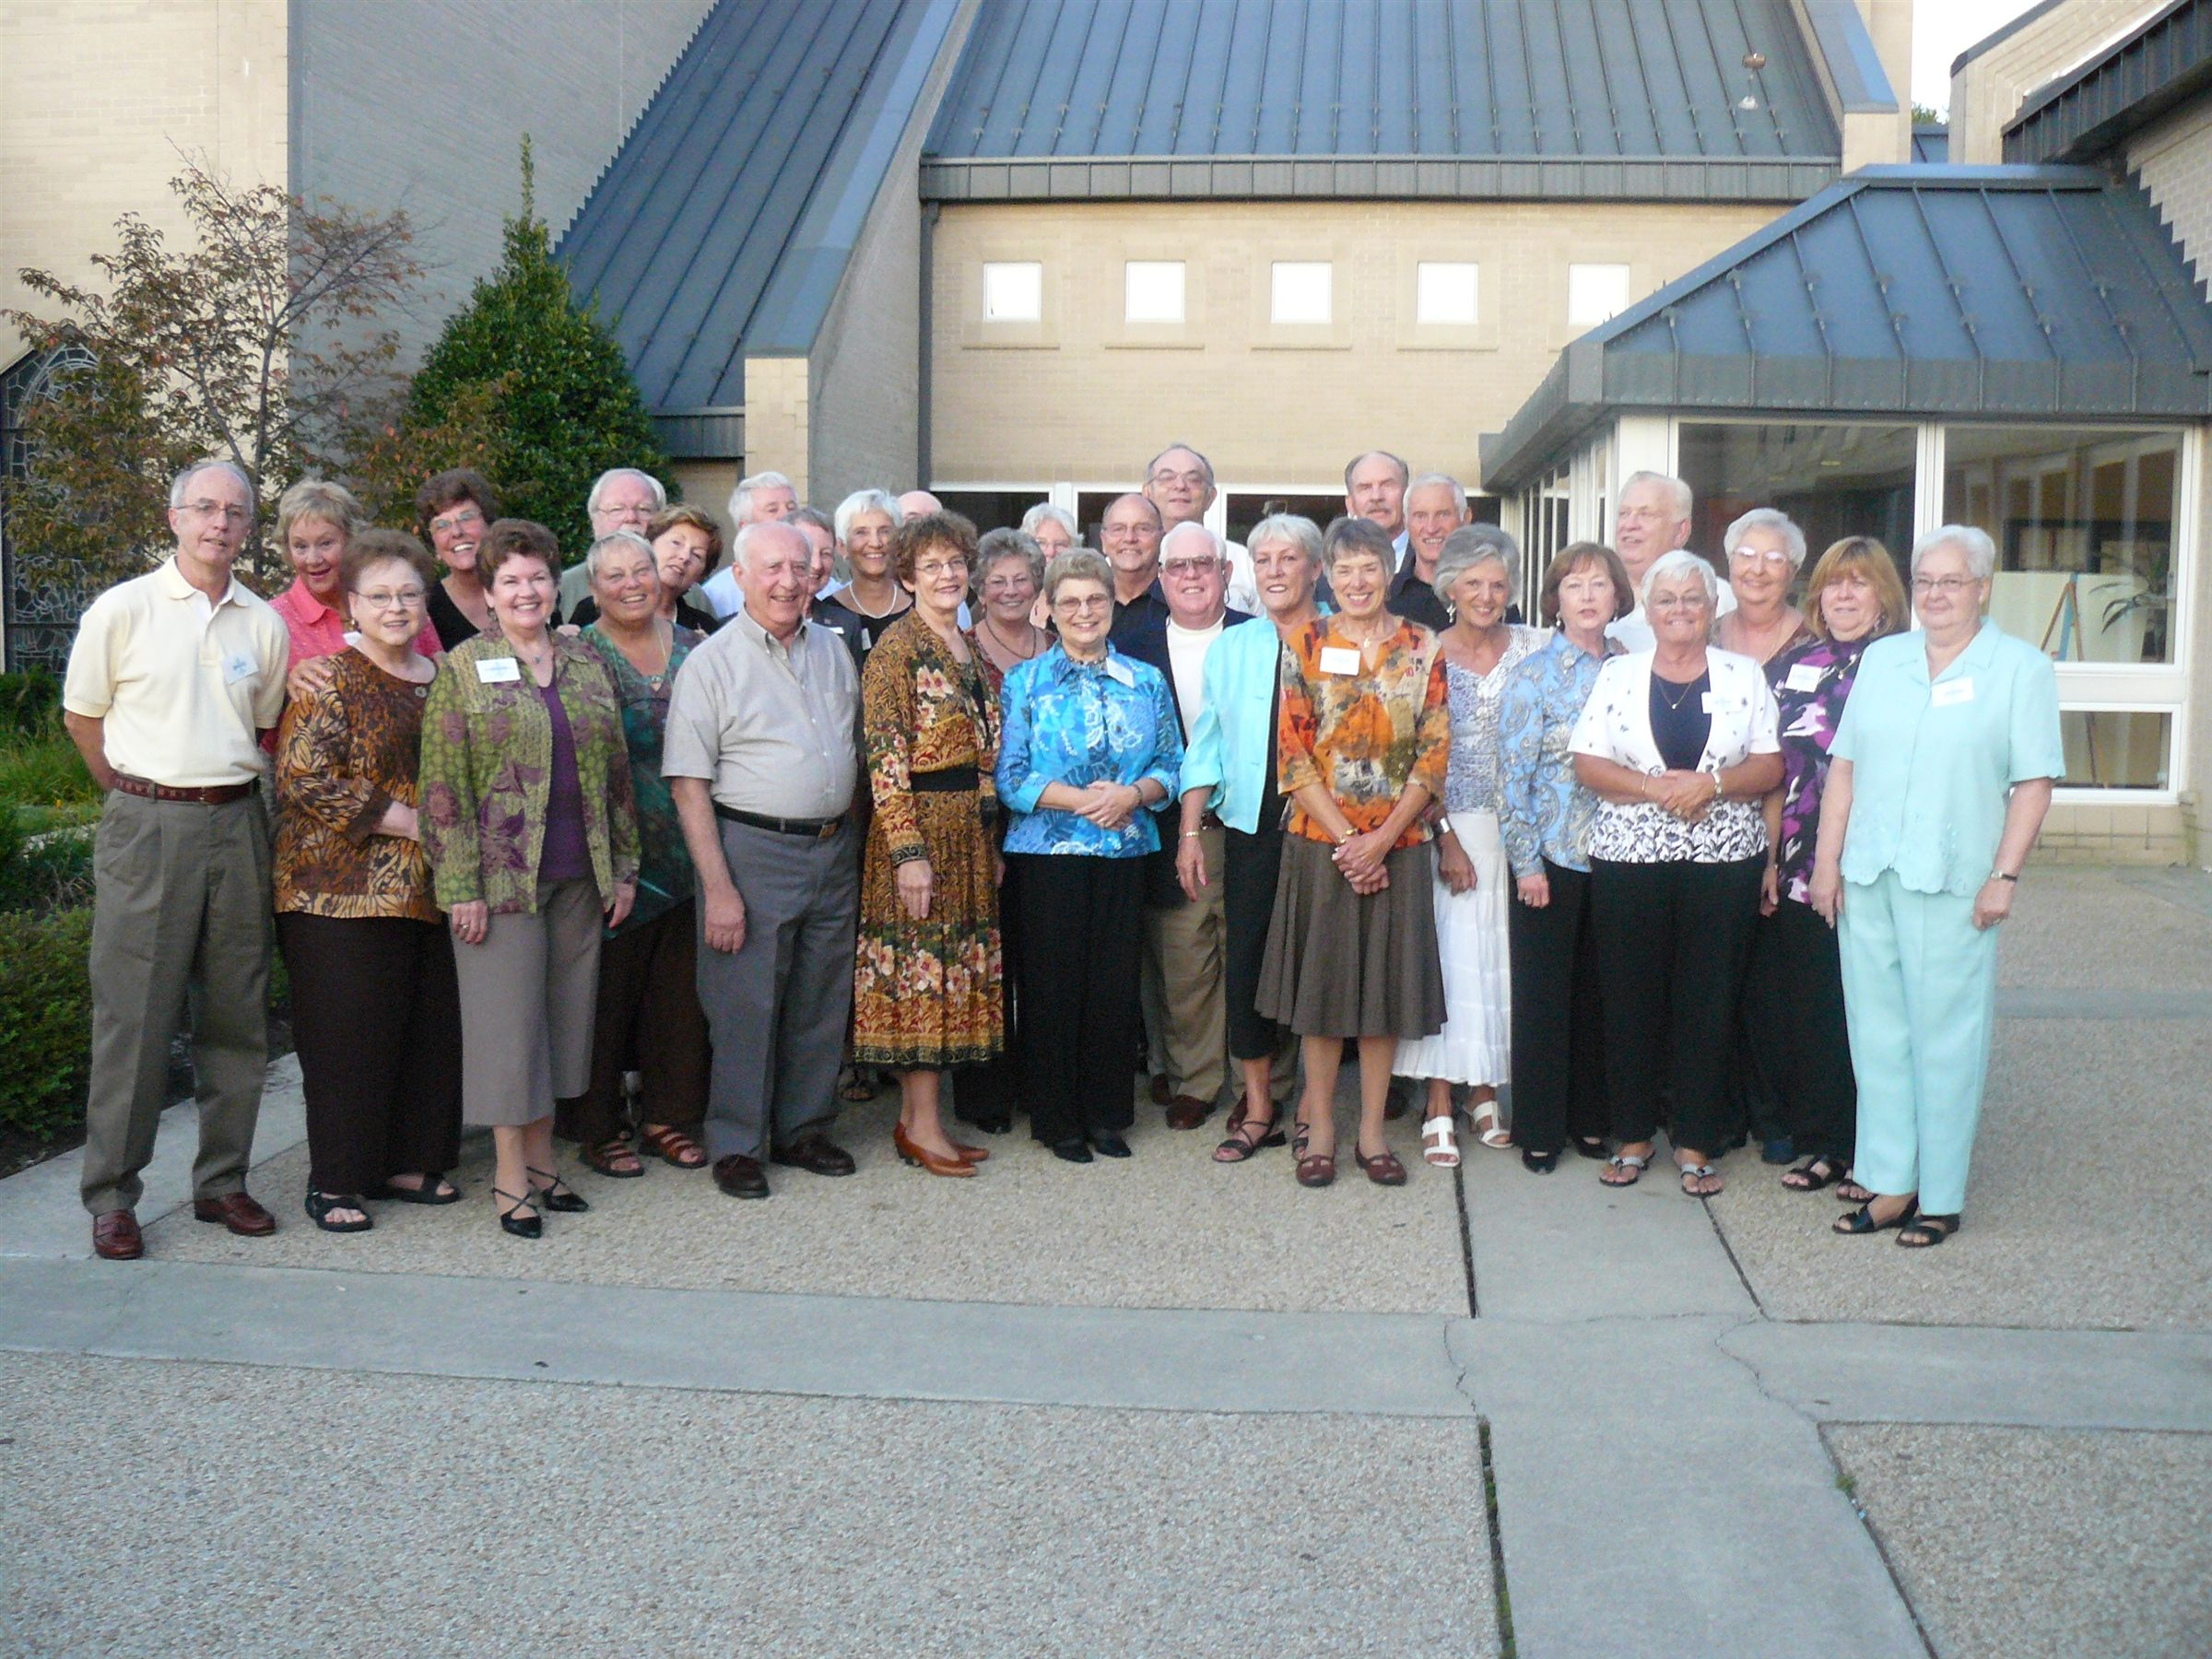 Class of 1957, 1958 and 1959 Reunion